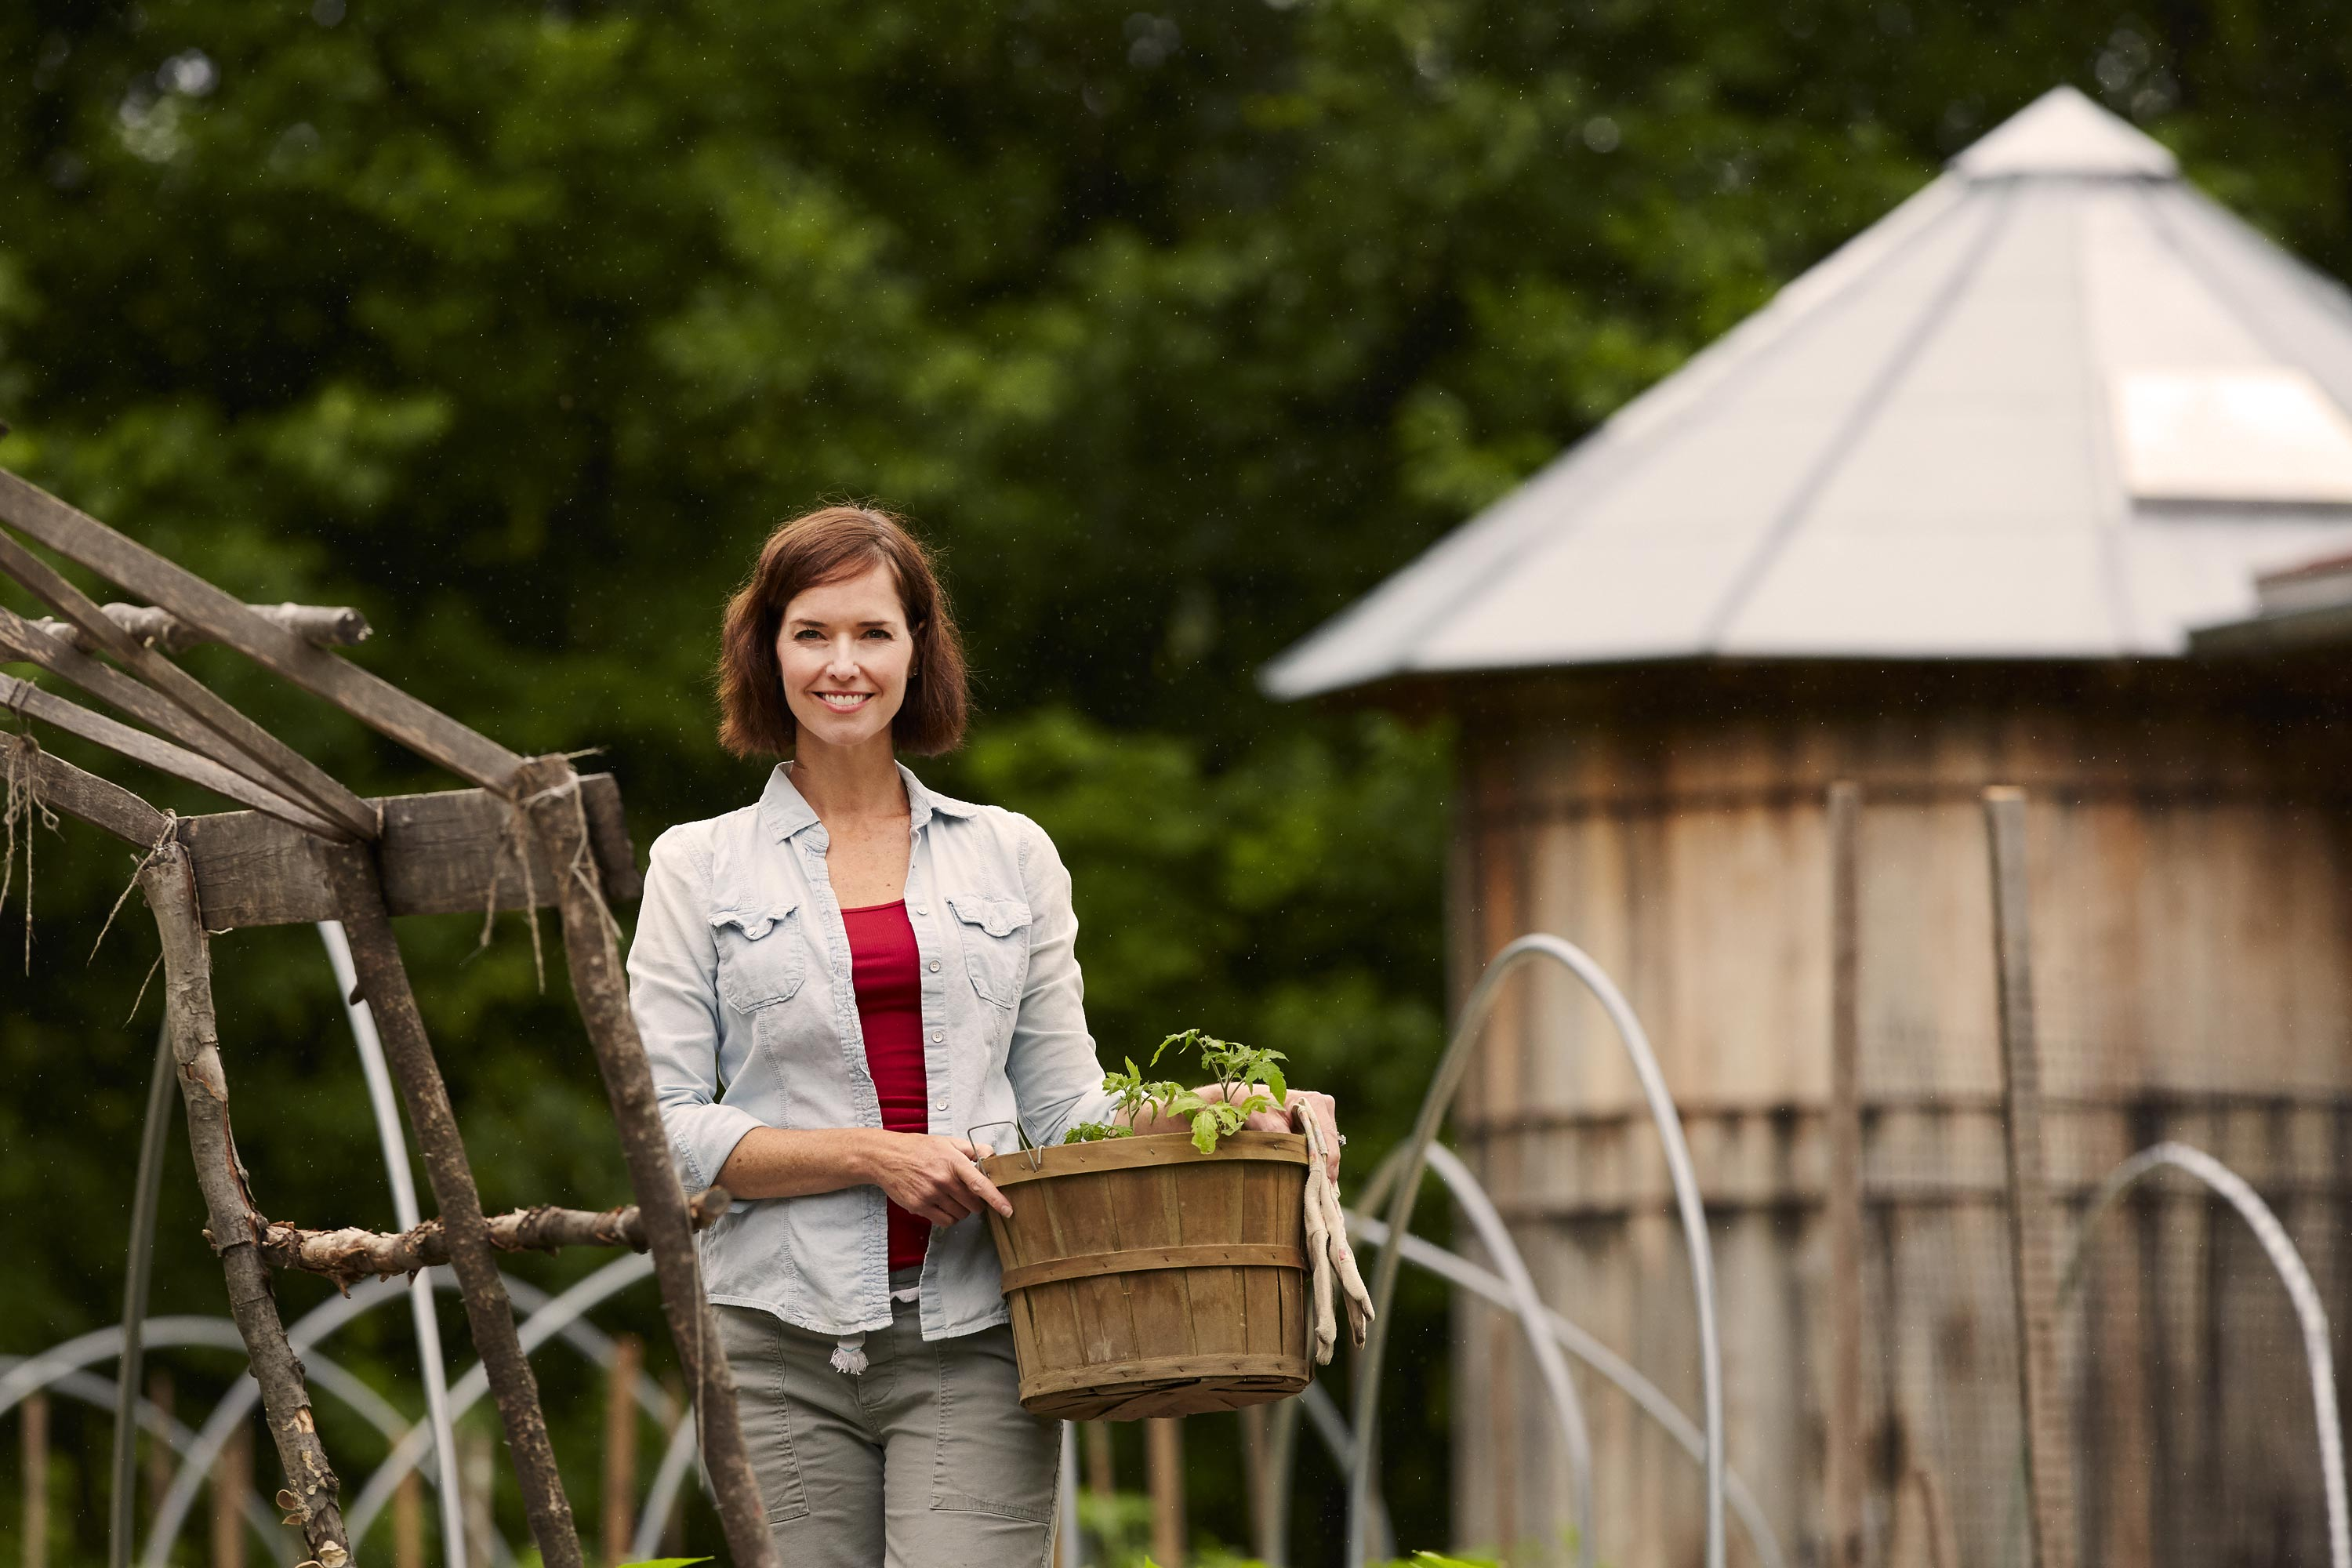 John Nienhuis | Agriculture & Lifestyle Photographer | Door County, WI Tourism Photography